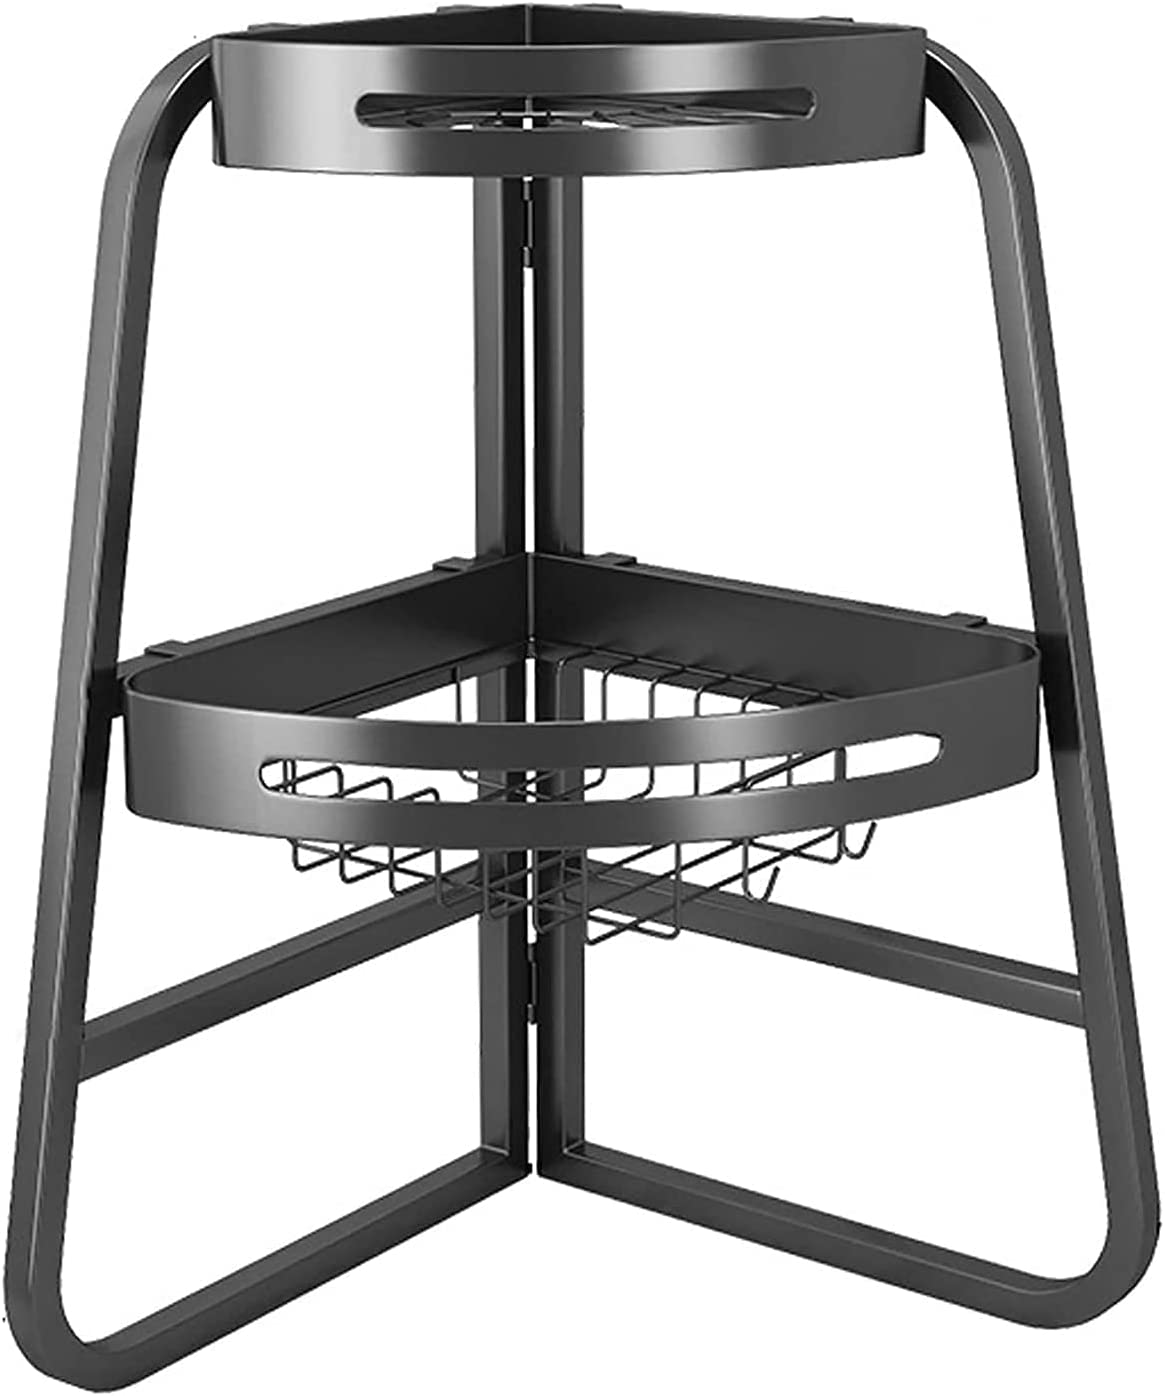 Kitchen Dish Drying Rack Sturdy 2021new shipping free Bargain for 2 Triangle Tier Drainer